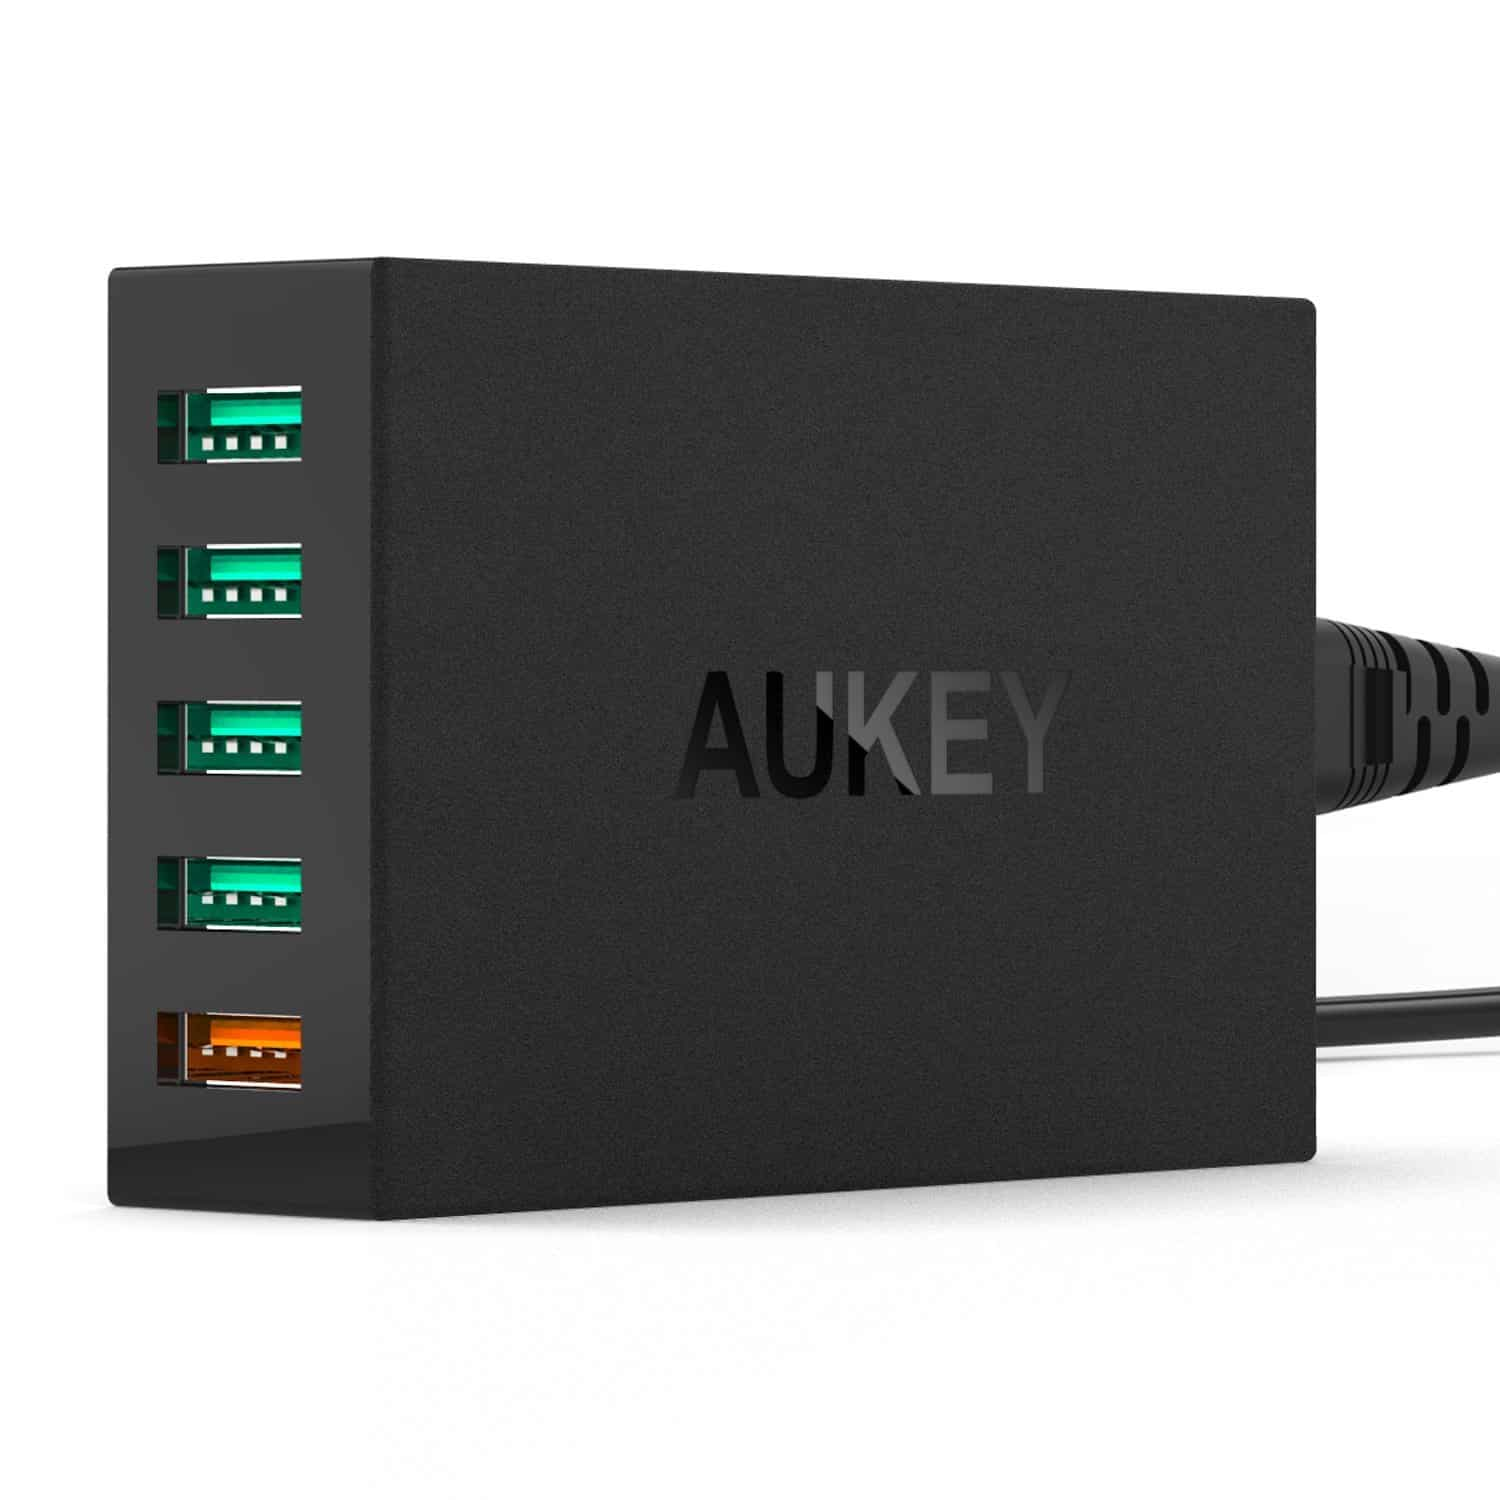 Aukey Quick Charge 2.0 Desktop Charger